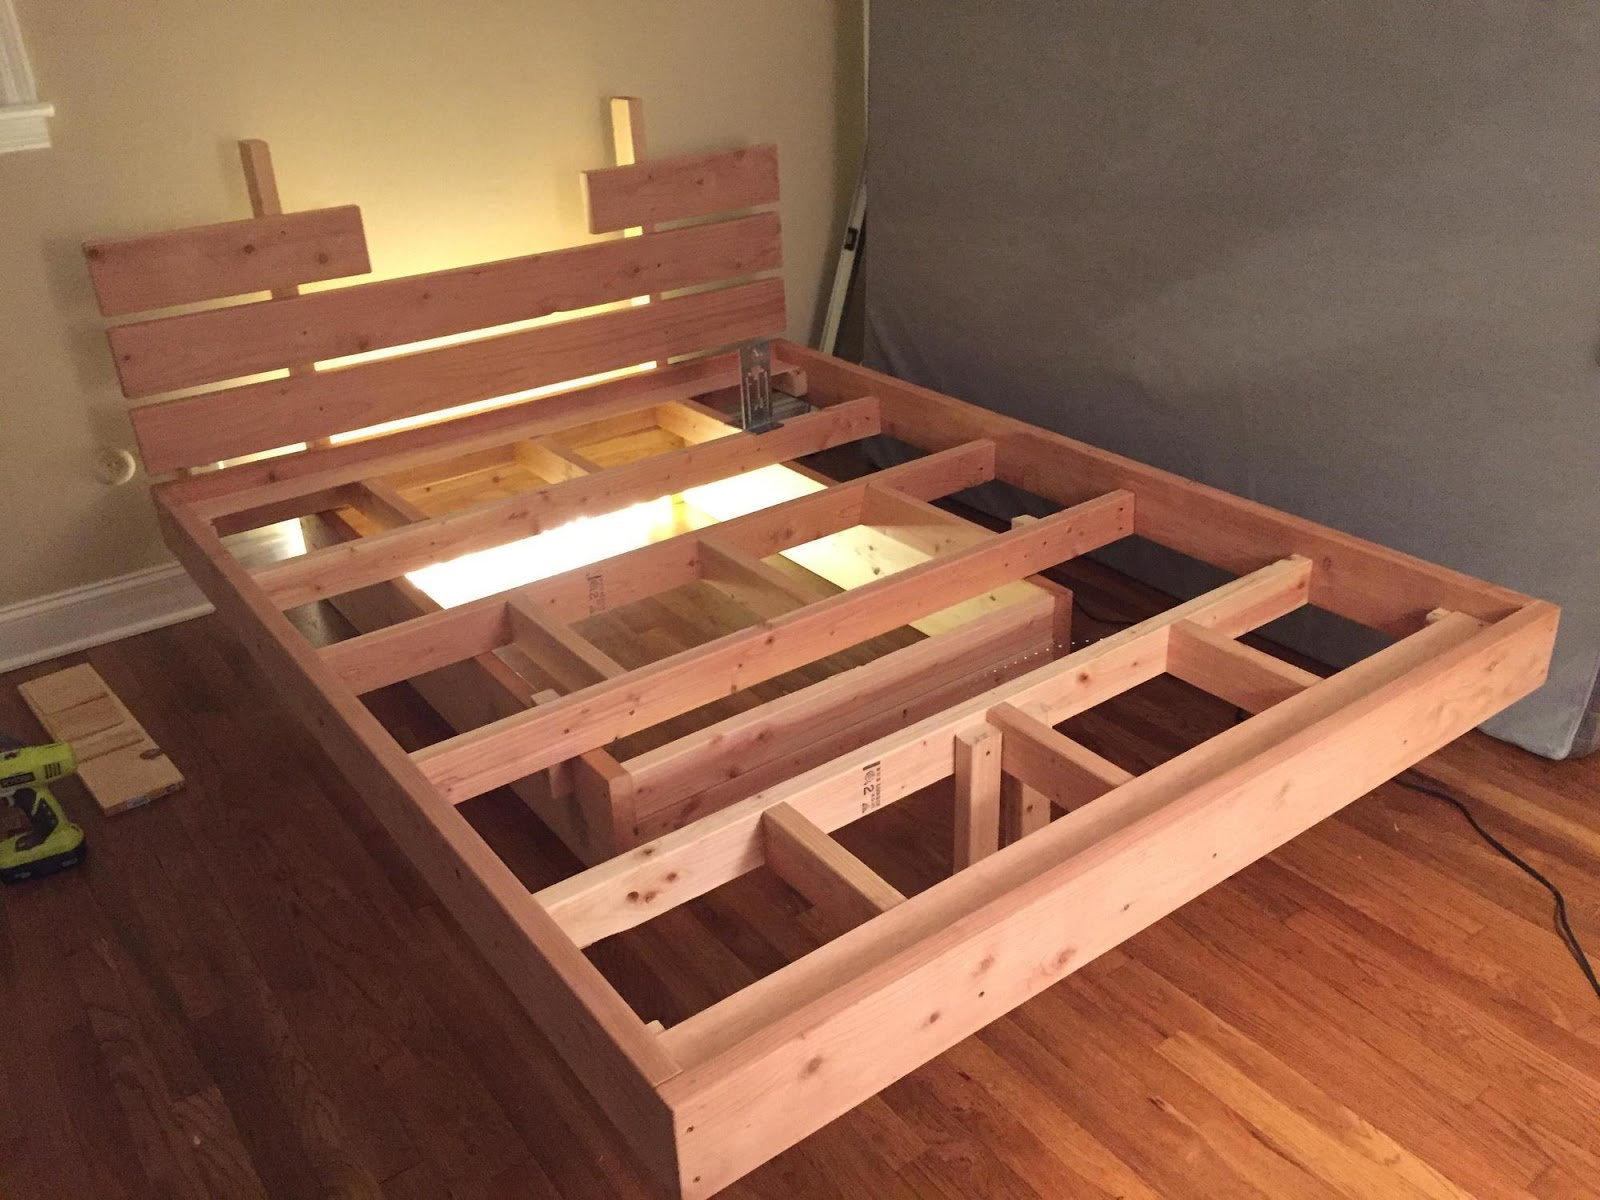 diy floating bed project for your room